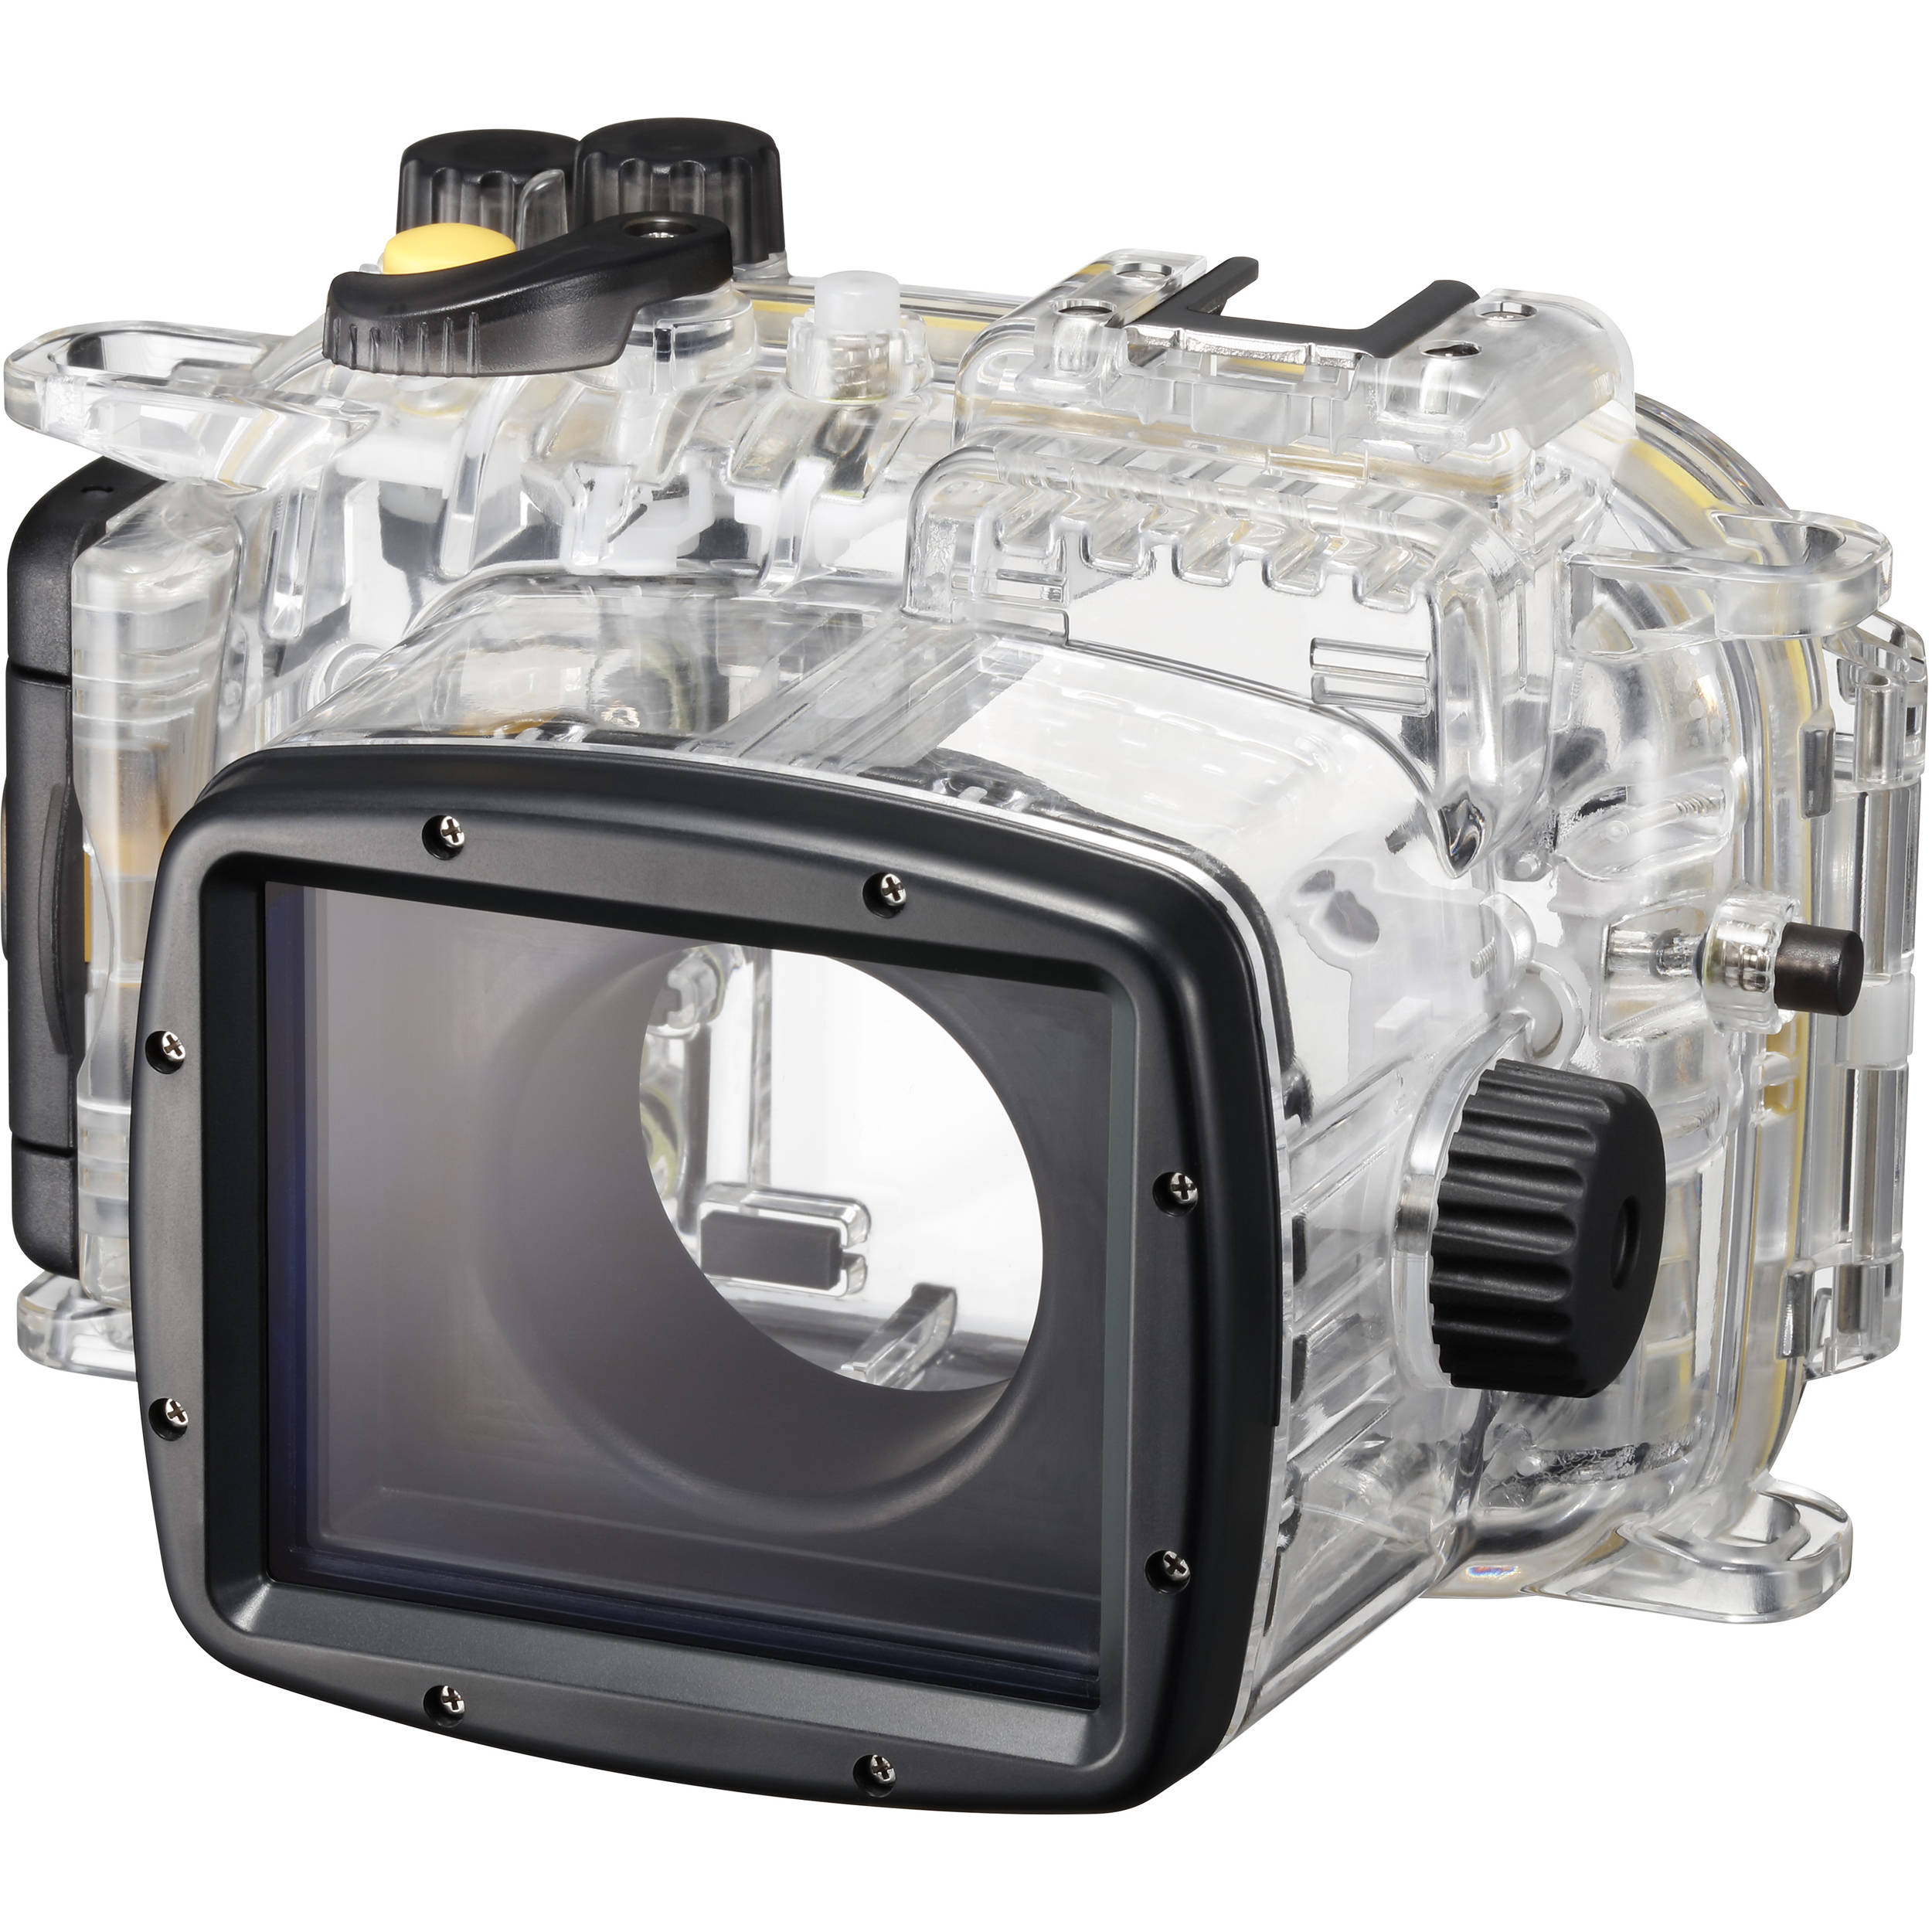 Canon WP-DC55 Waterproof Case for G7 X Mark II